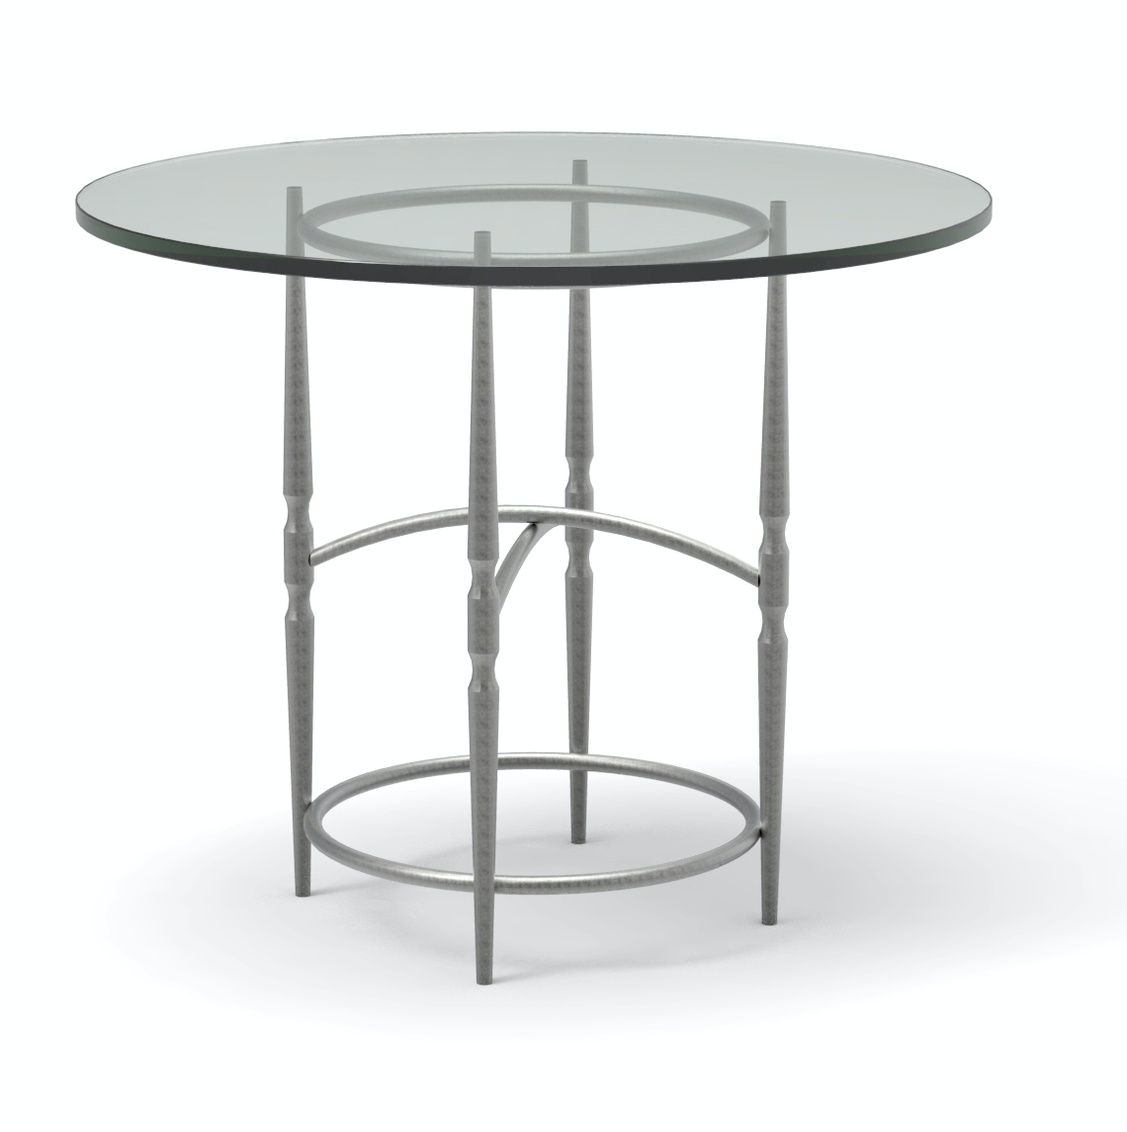 Calico Bay Dining Height Table T09d: Furniture Design Warehouse Beaufort Sc